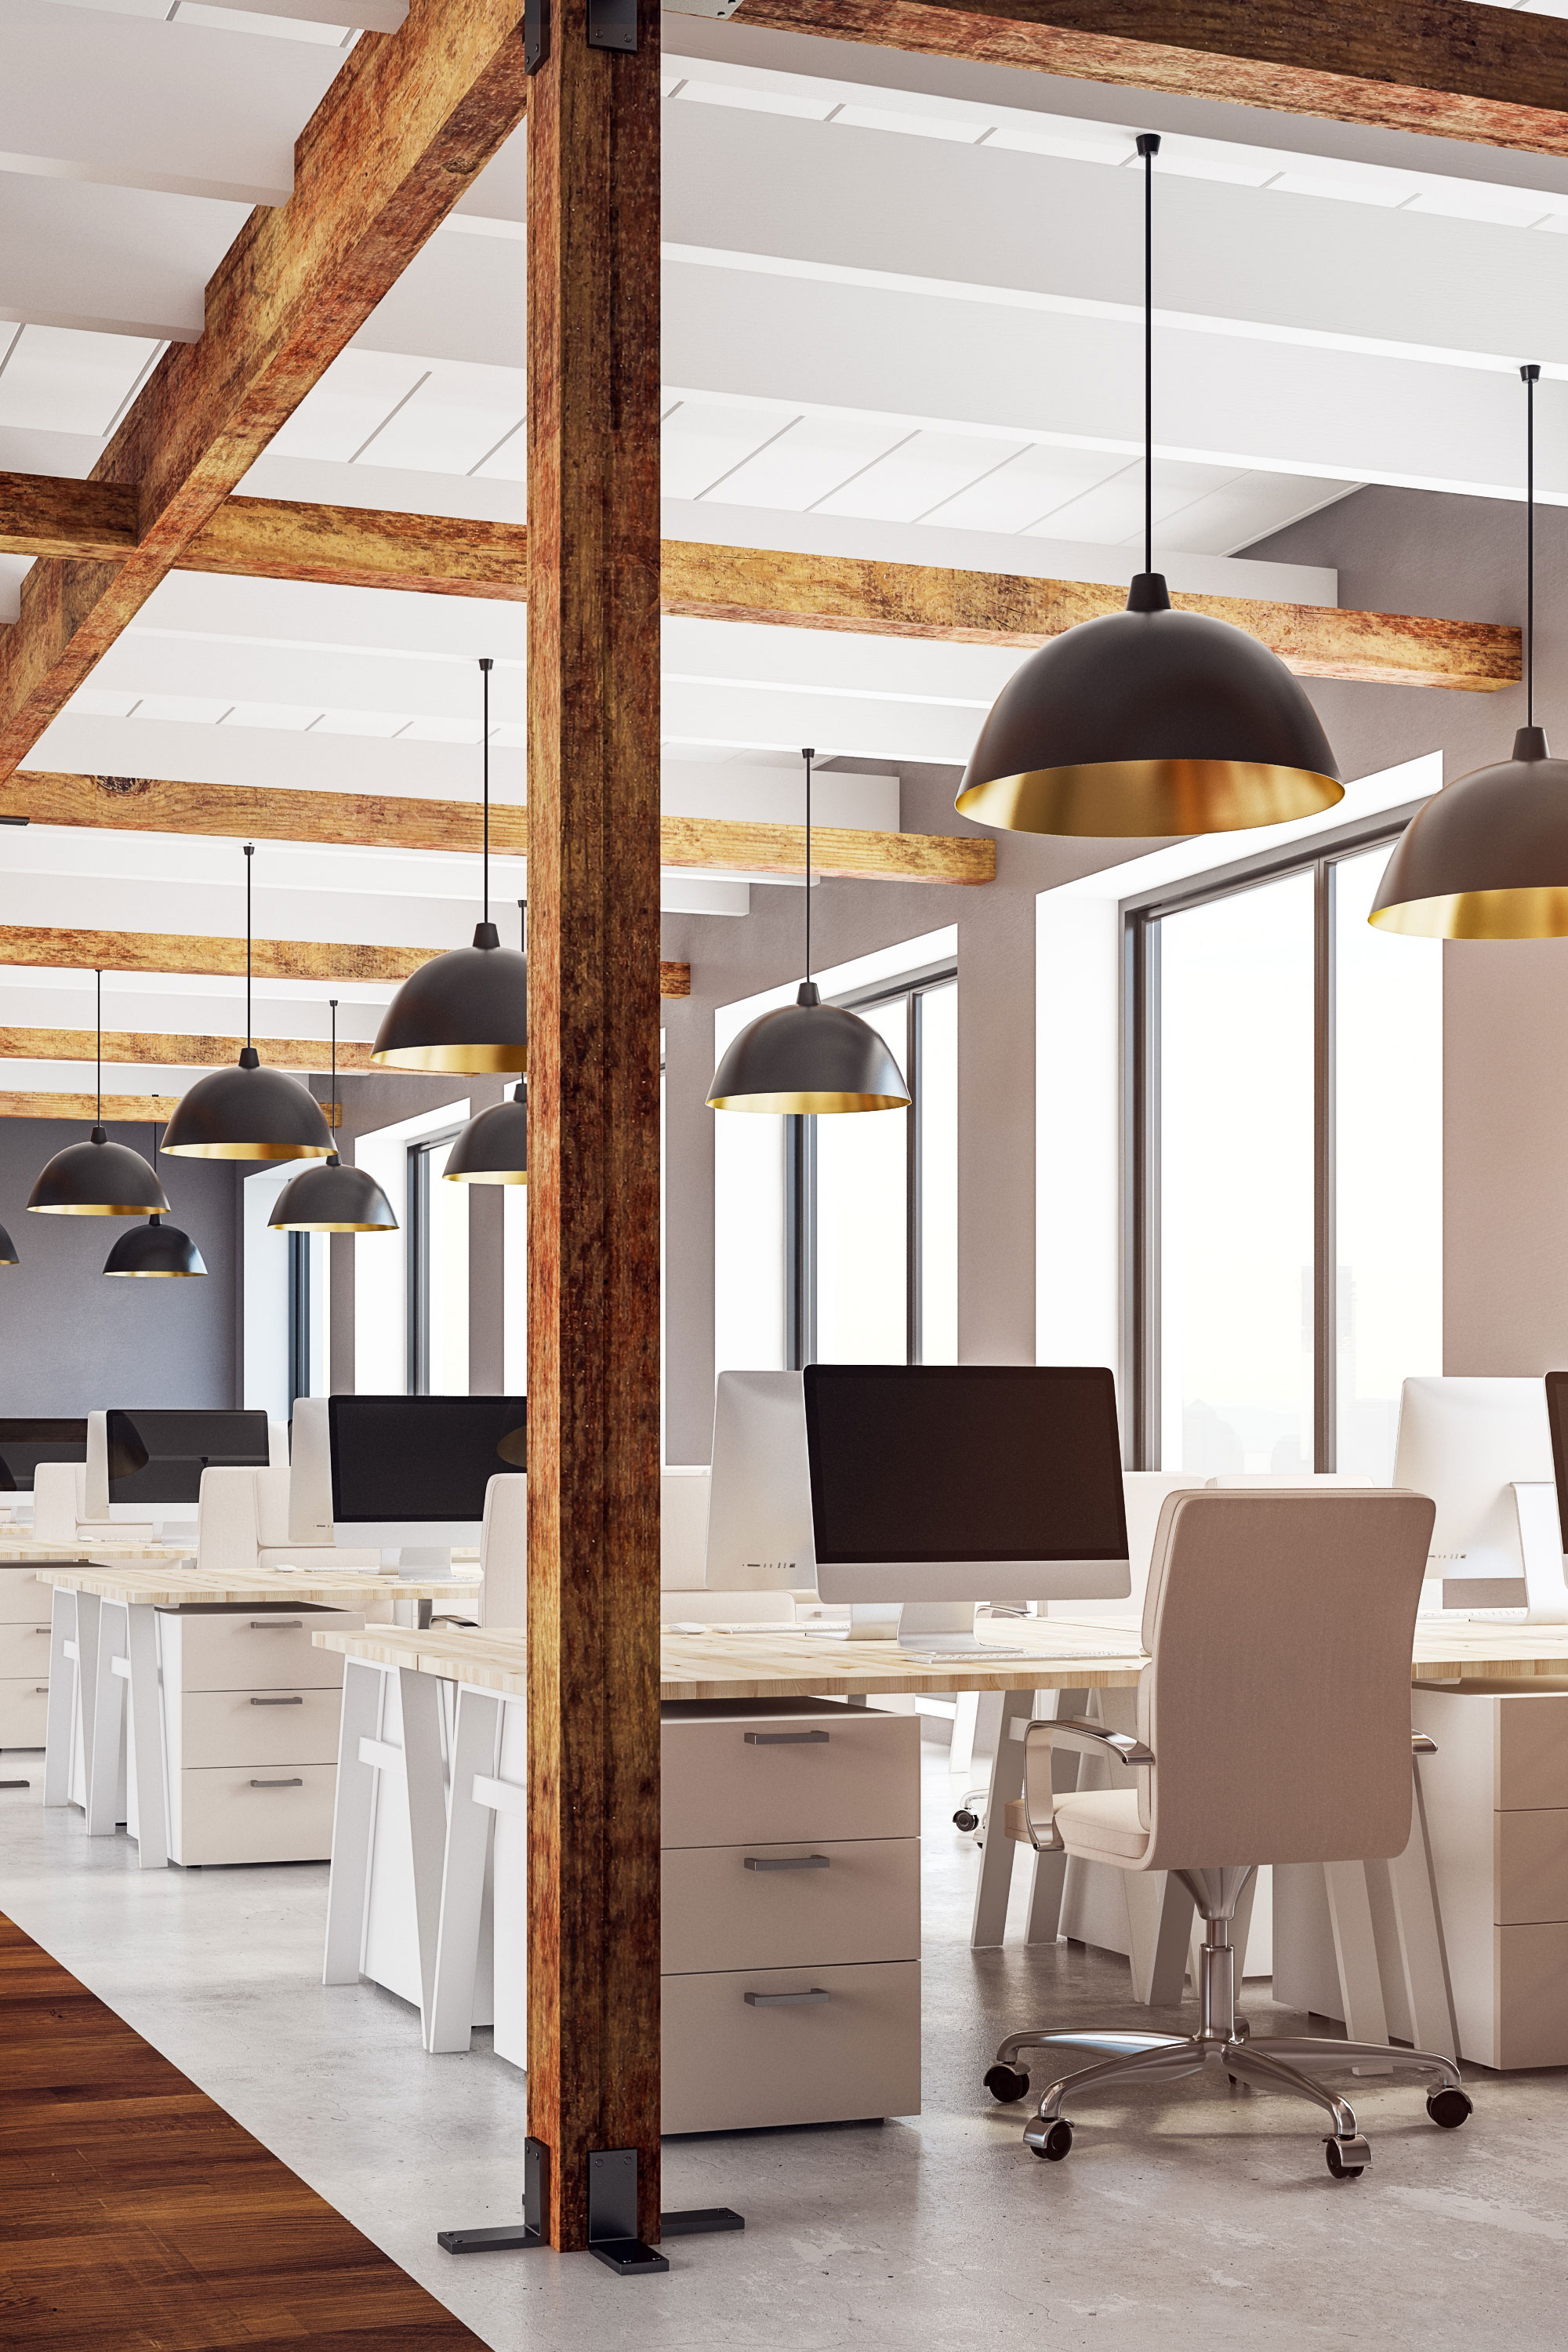 Interior Design   Office Innovations, The Best Choice For Office Design In  Jackson, Ridgeland, Flowood, And Gulfport Mississippi